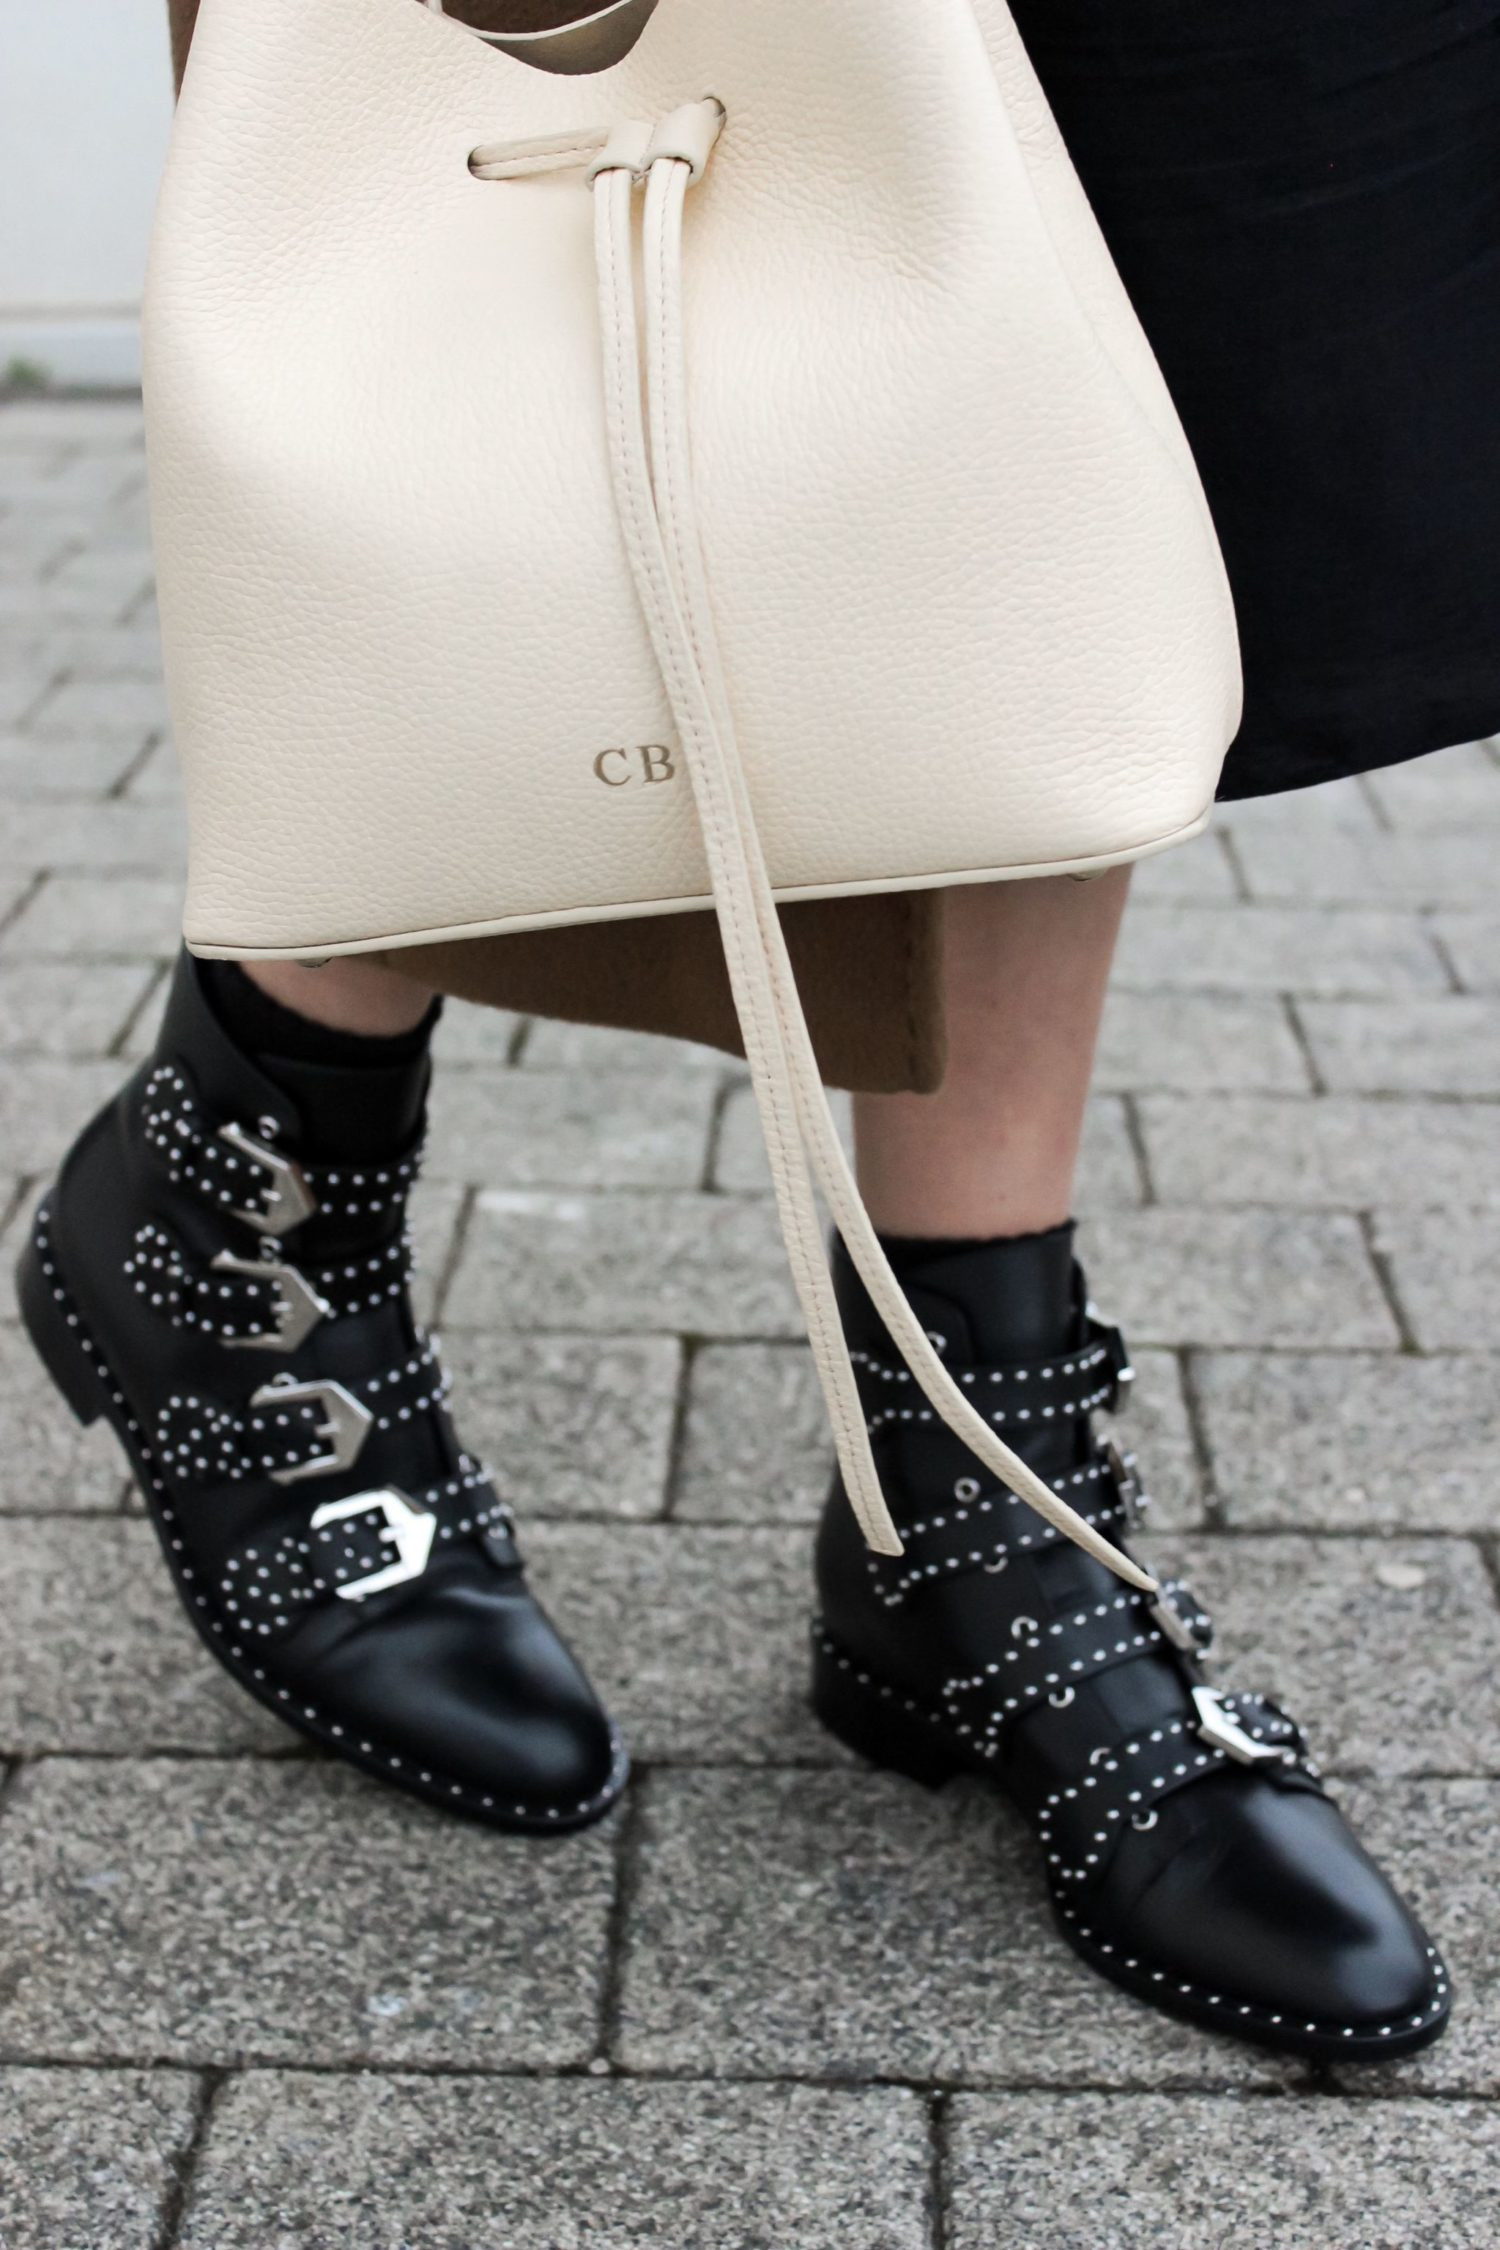 Givenchy buckle boots review - street